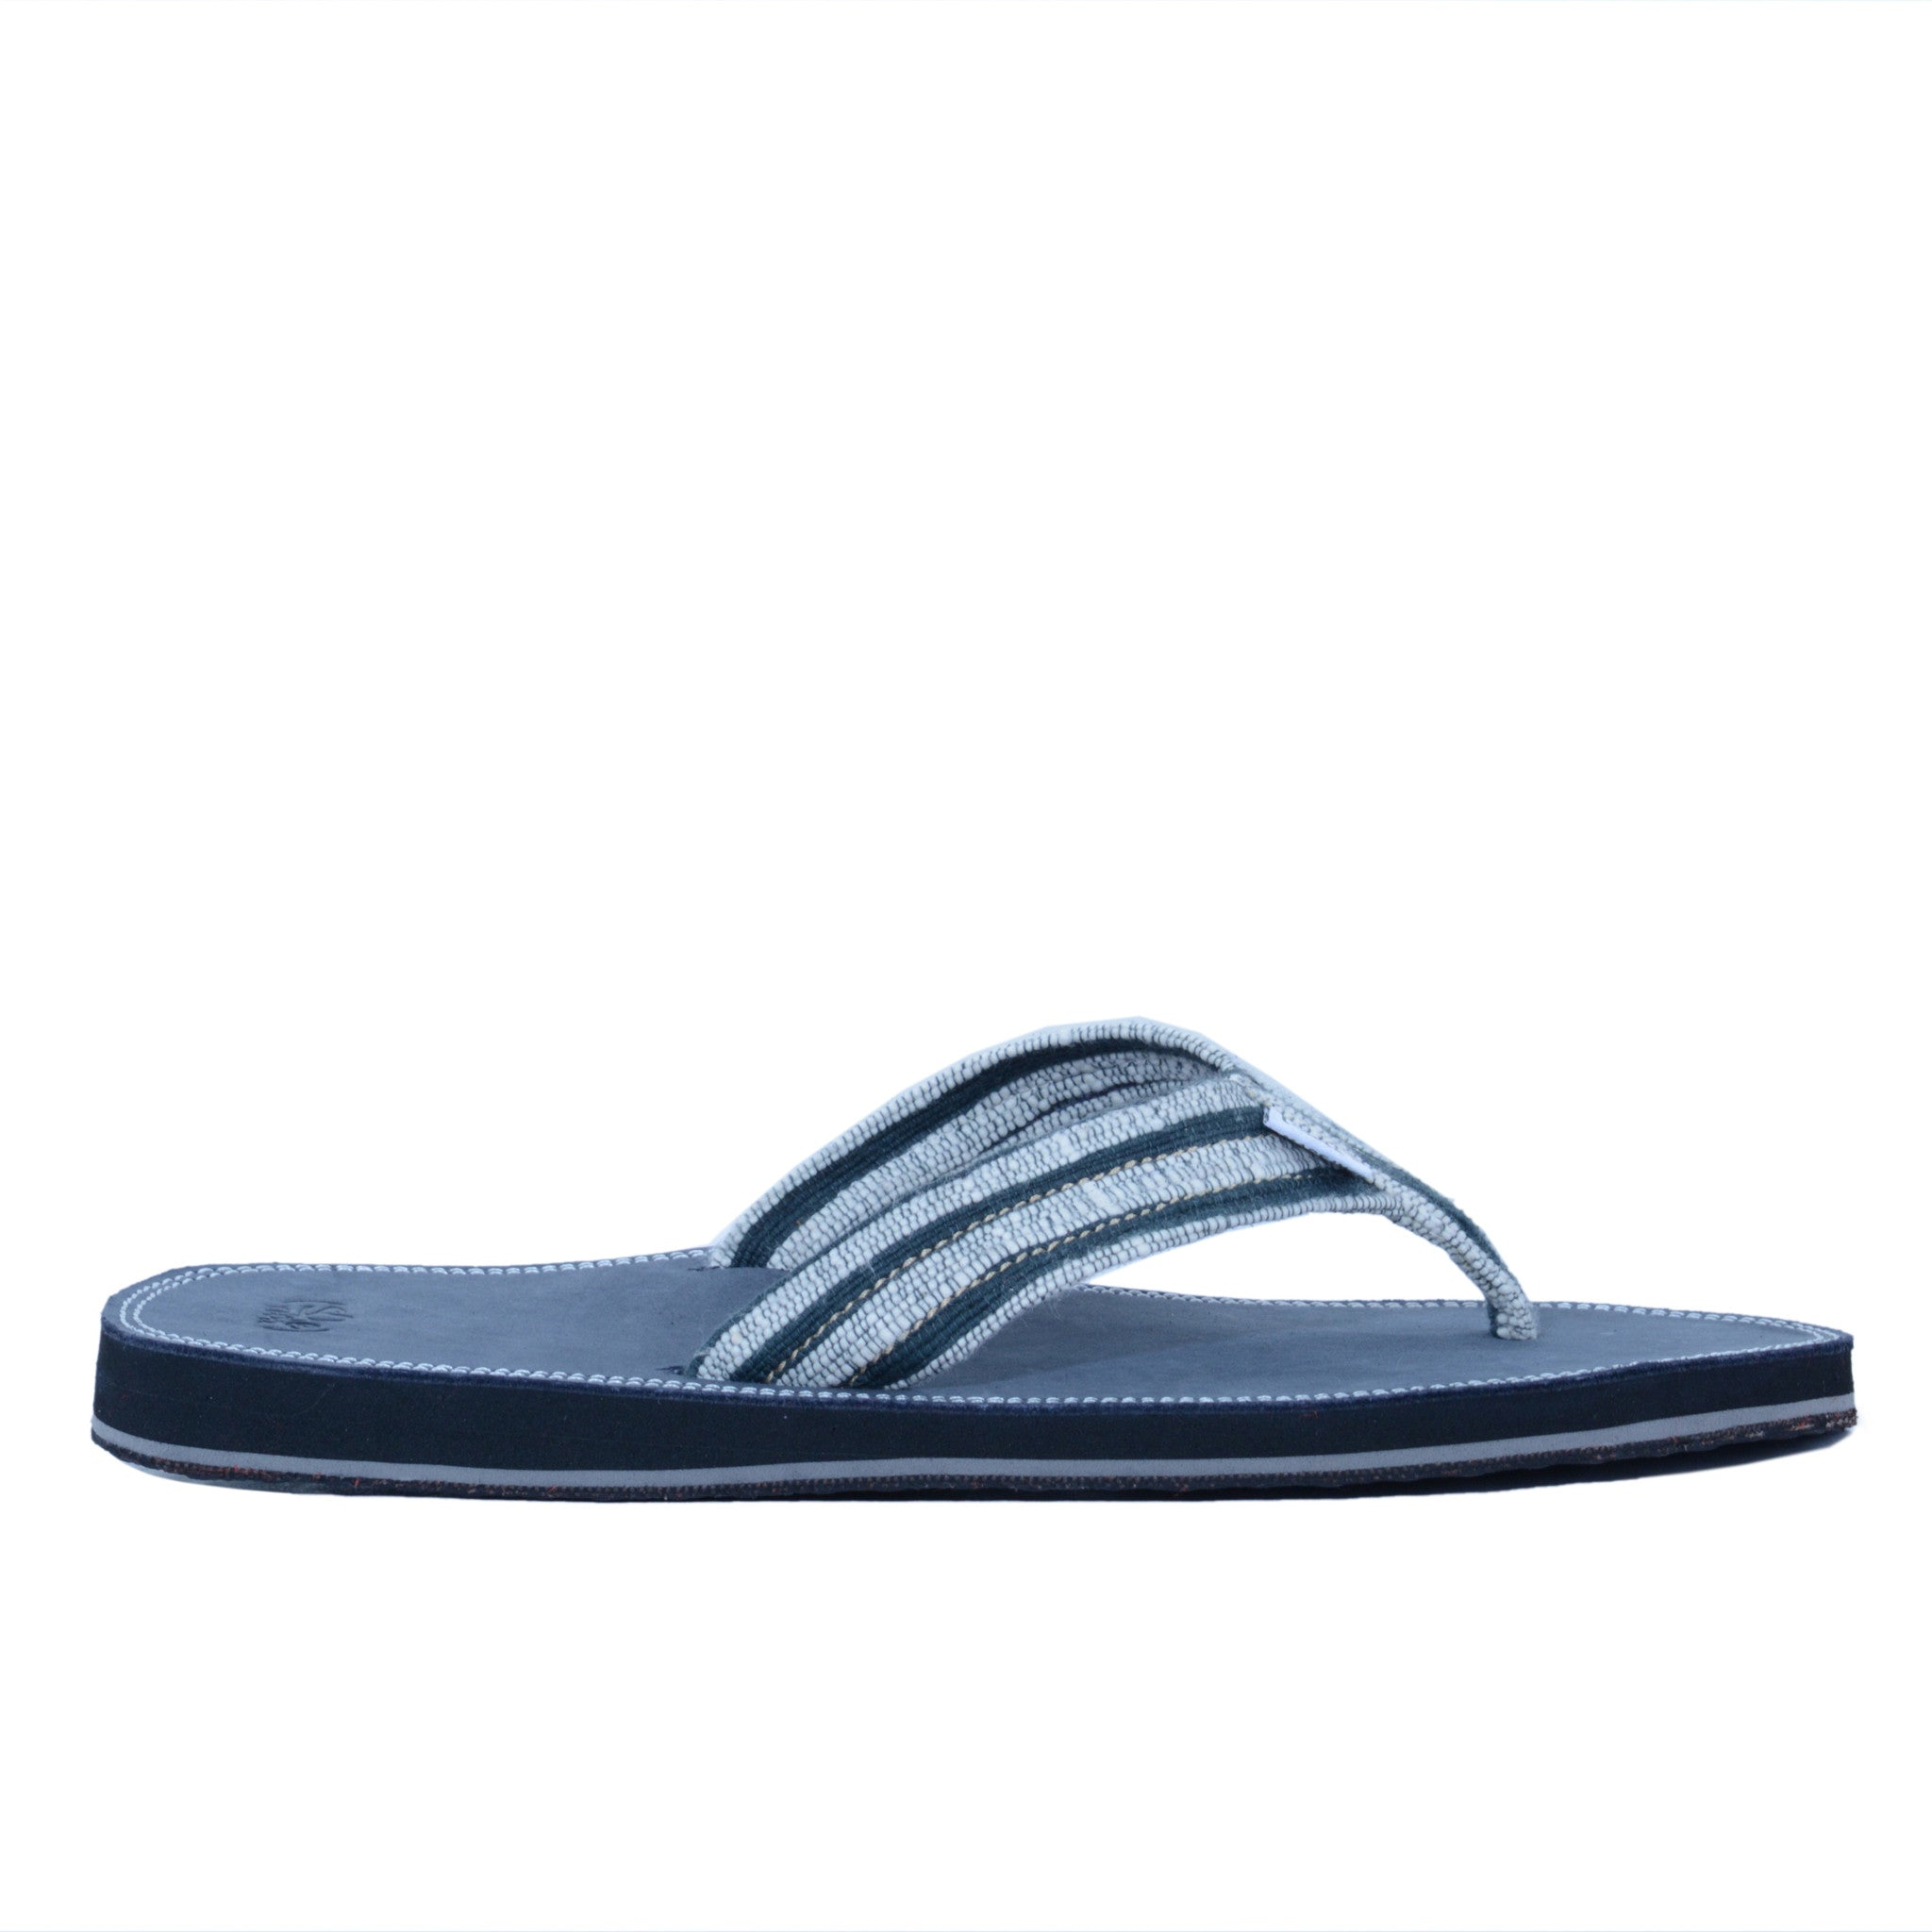 solerebels Light Blue nuDEAL wave 2 Sandals